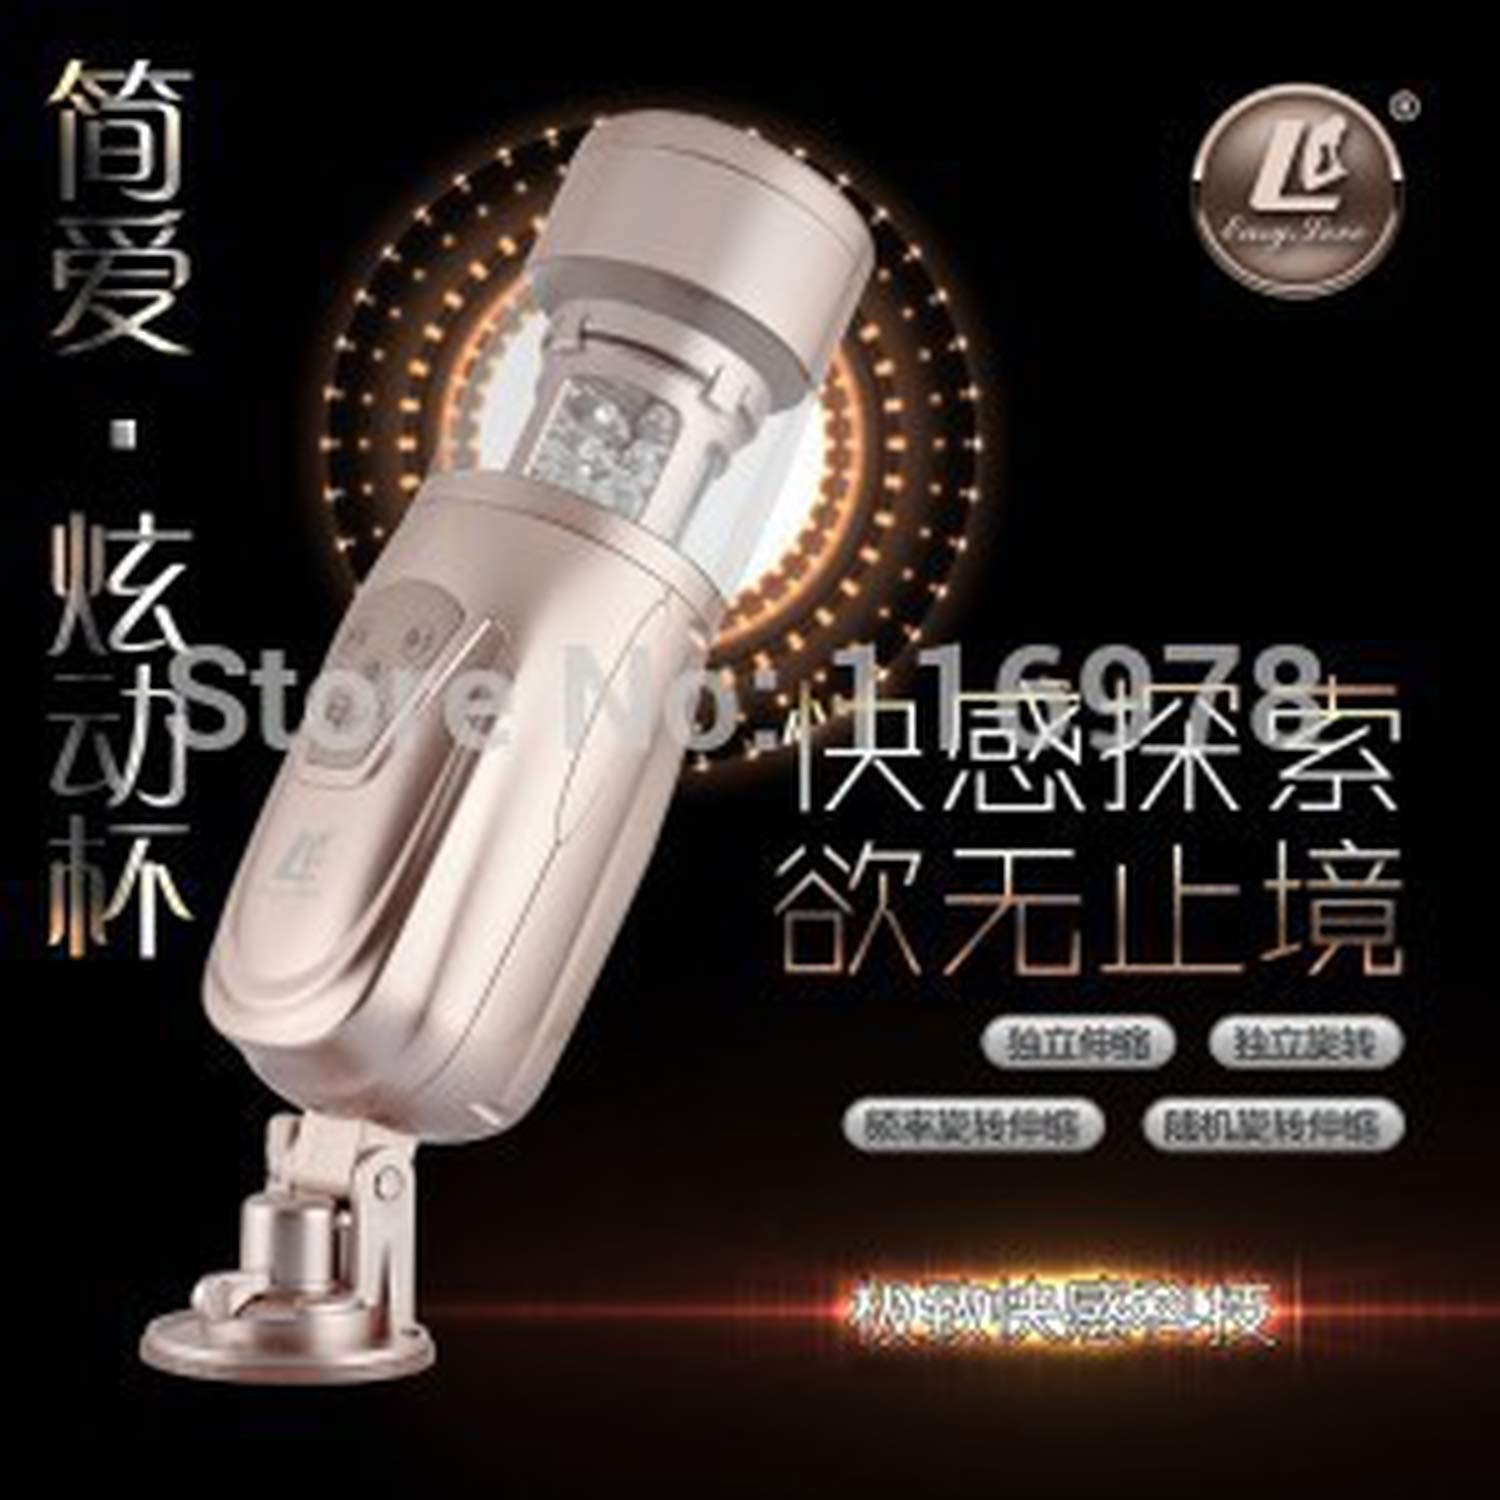 FKJDS Adult to*ys New Telescopic Lover 2 Automatic Sexx Machine Rotating and Retractable Electric Male Mastur**bators Tshirt Sexx to*ys for Men by FKJDS (Image #4)